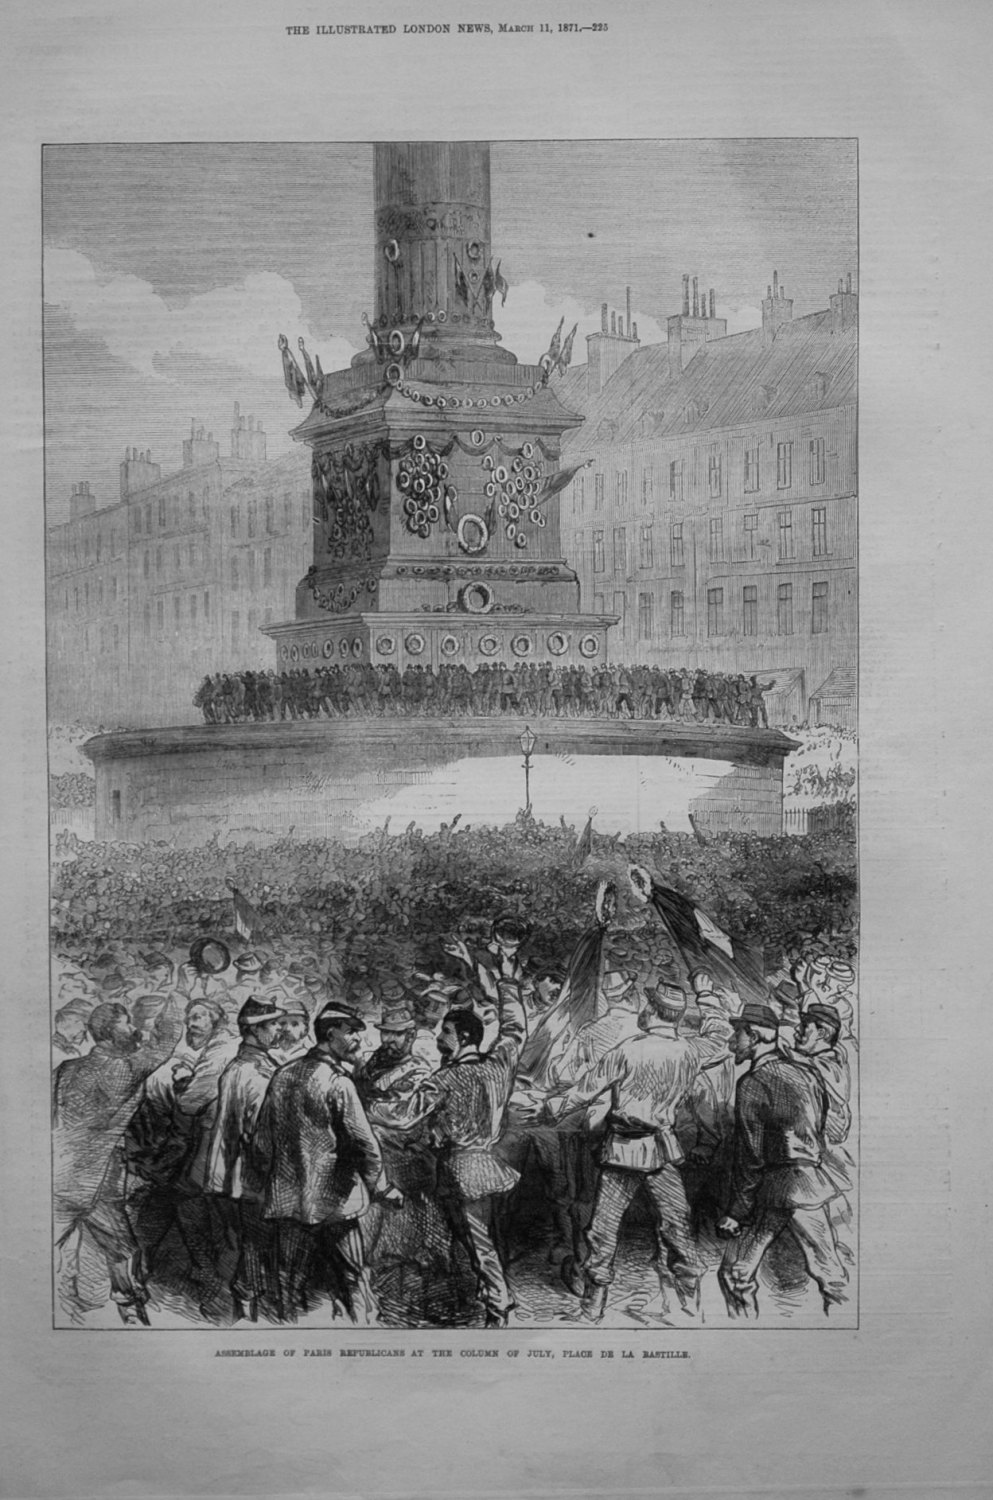 Assemblage of Paris Republicans at the Column of July, Place De La Bastille